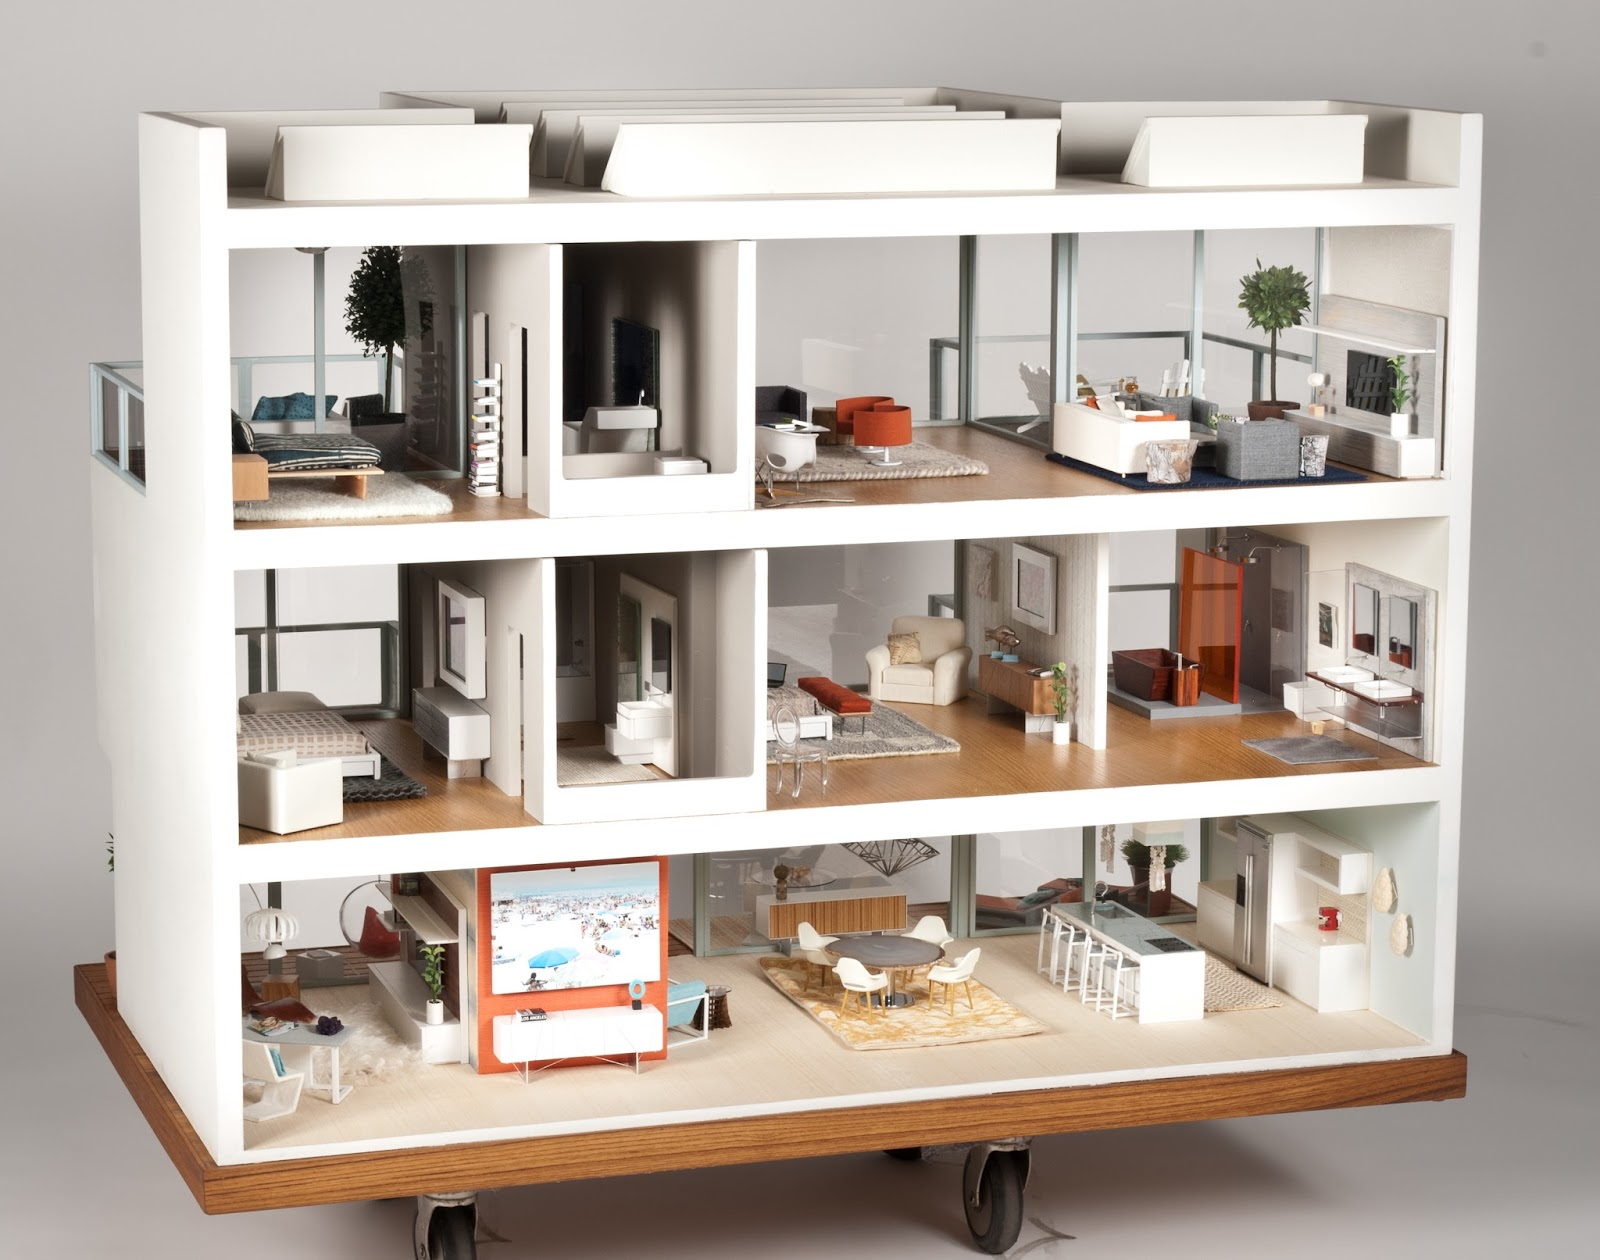 10 Dolls Houses Every Grown Up Kid Would Want To Play With